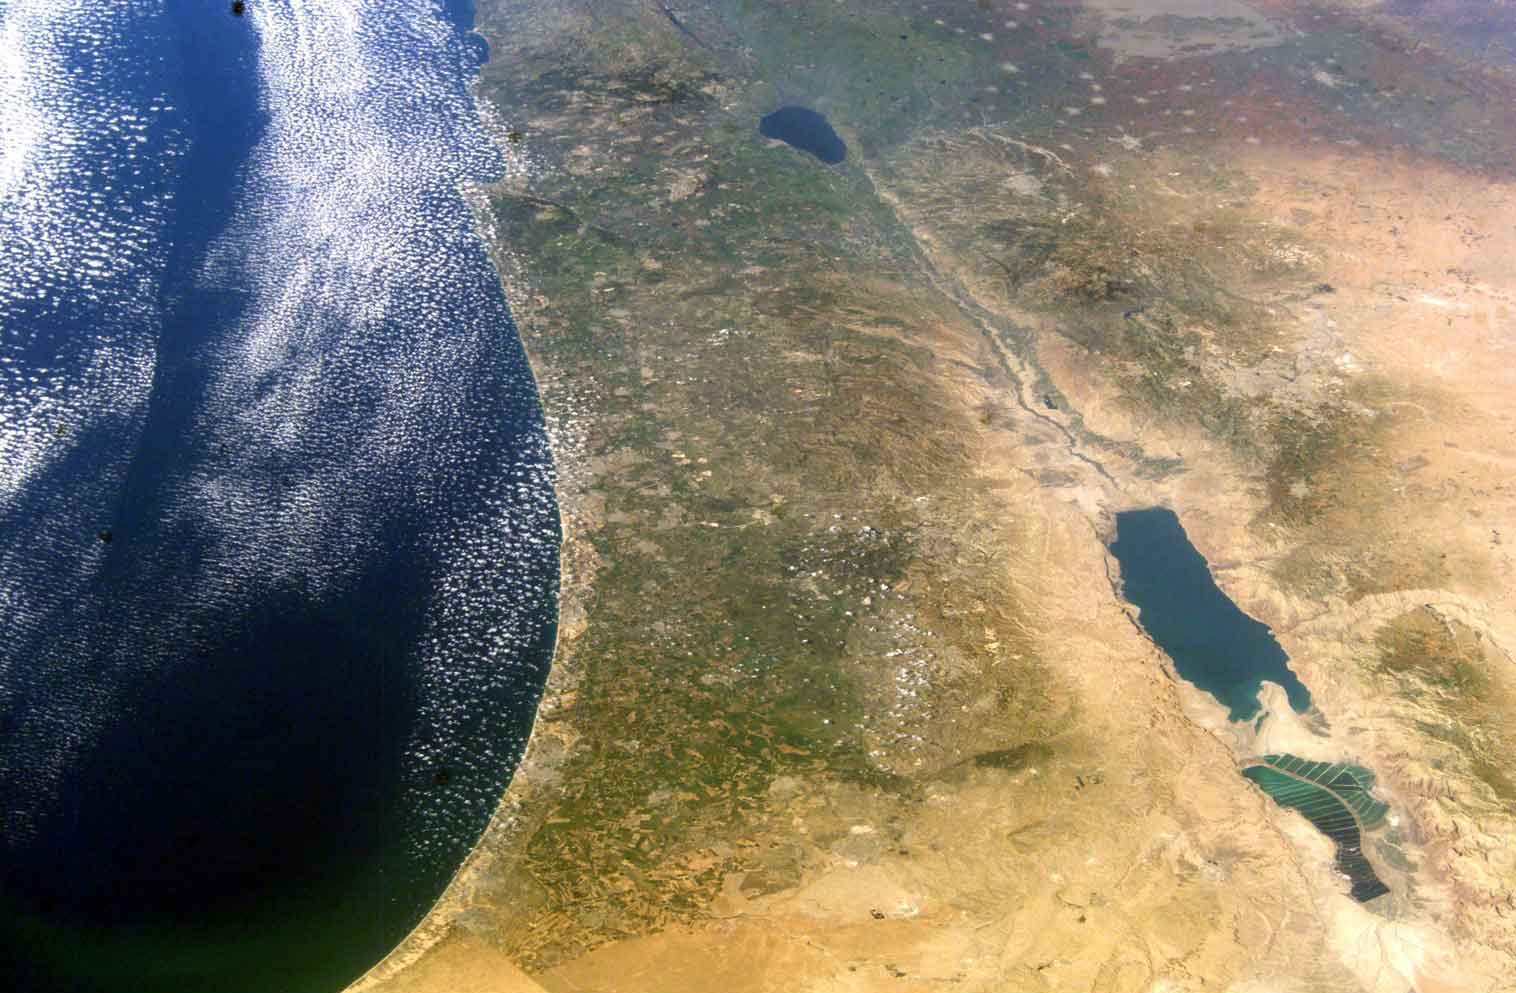 Israel NASA picture